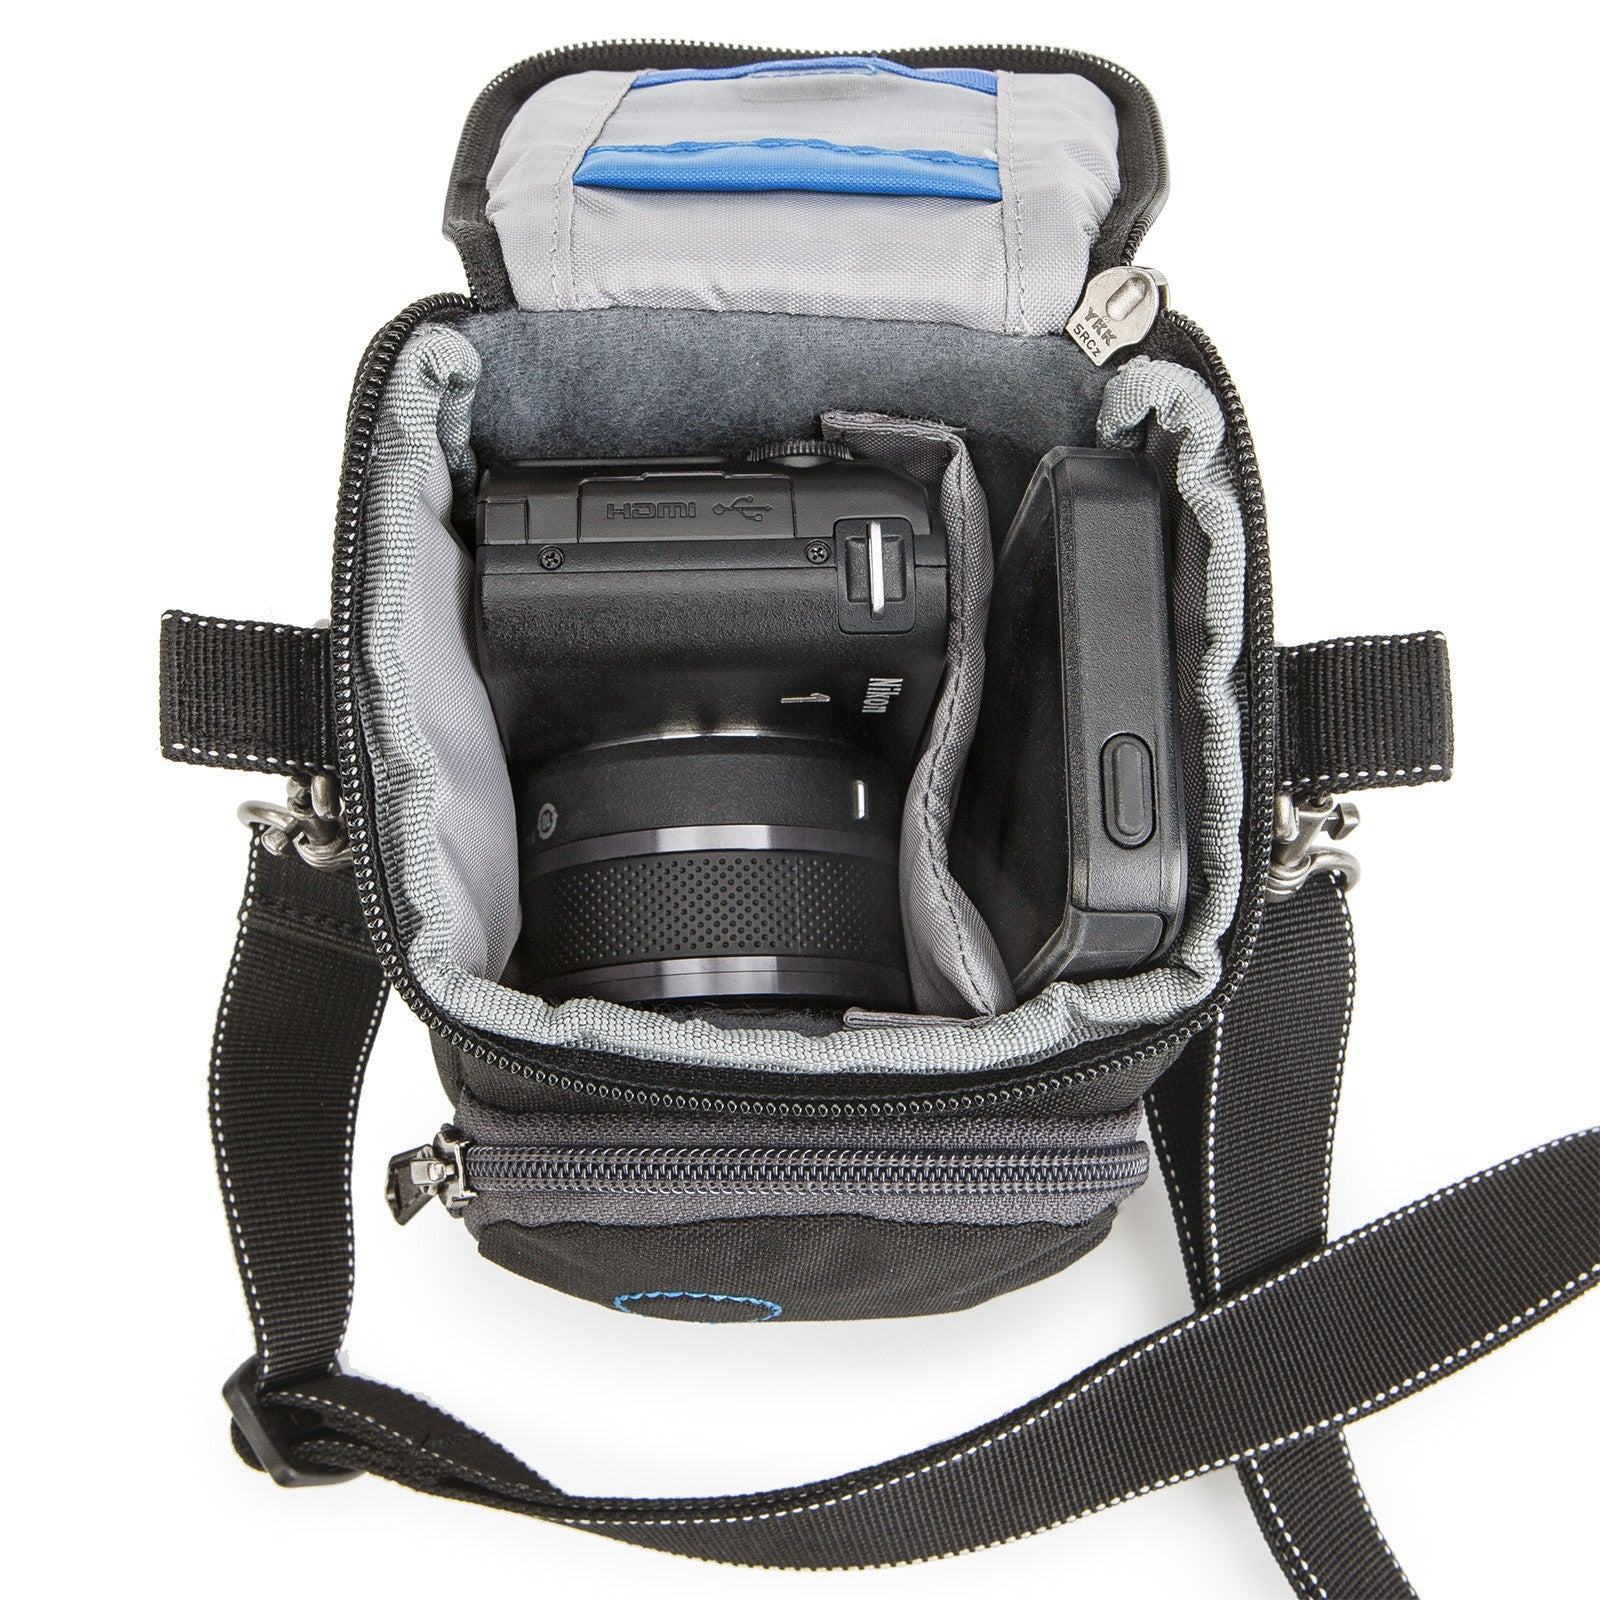 0c0dc1fdd2 Mirrorless Mover® 5 - Premium Photography Shoulder Bag • Think Tank ...